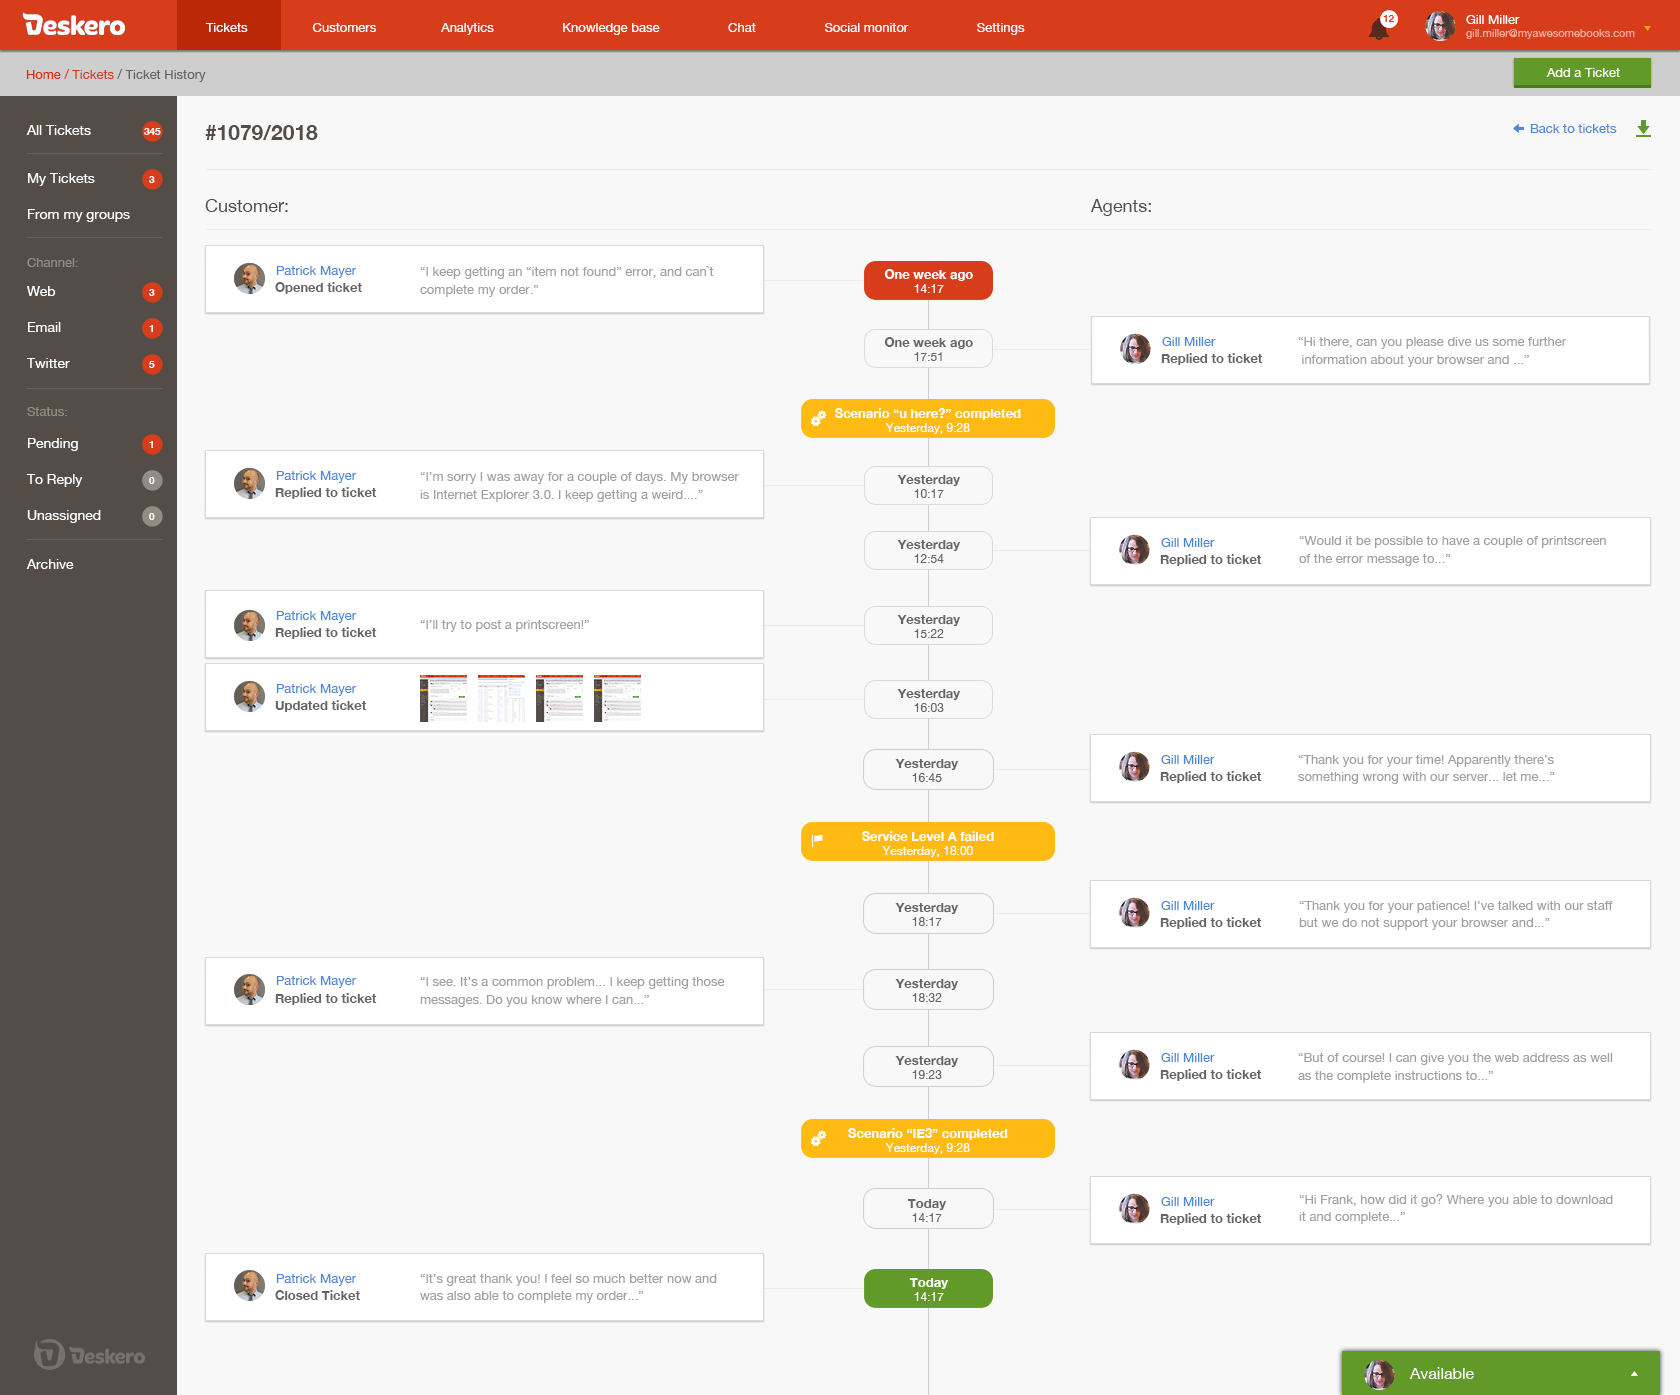 Ticket timeline view allows you to see a log of all activities regarding a ticket